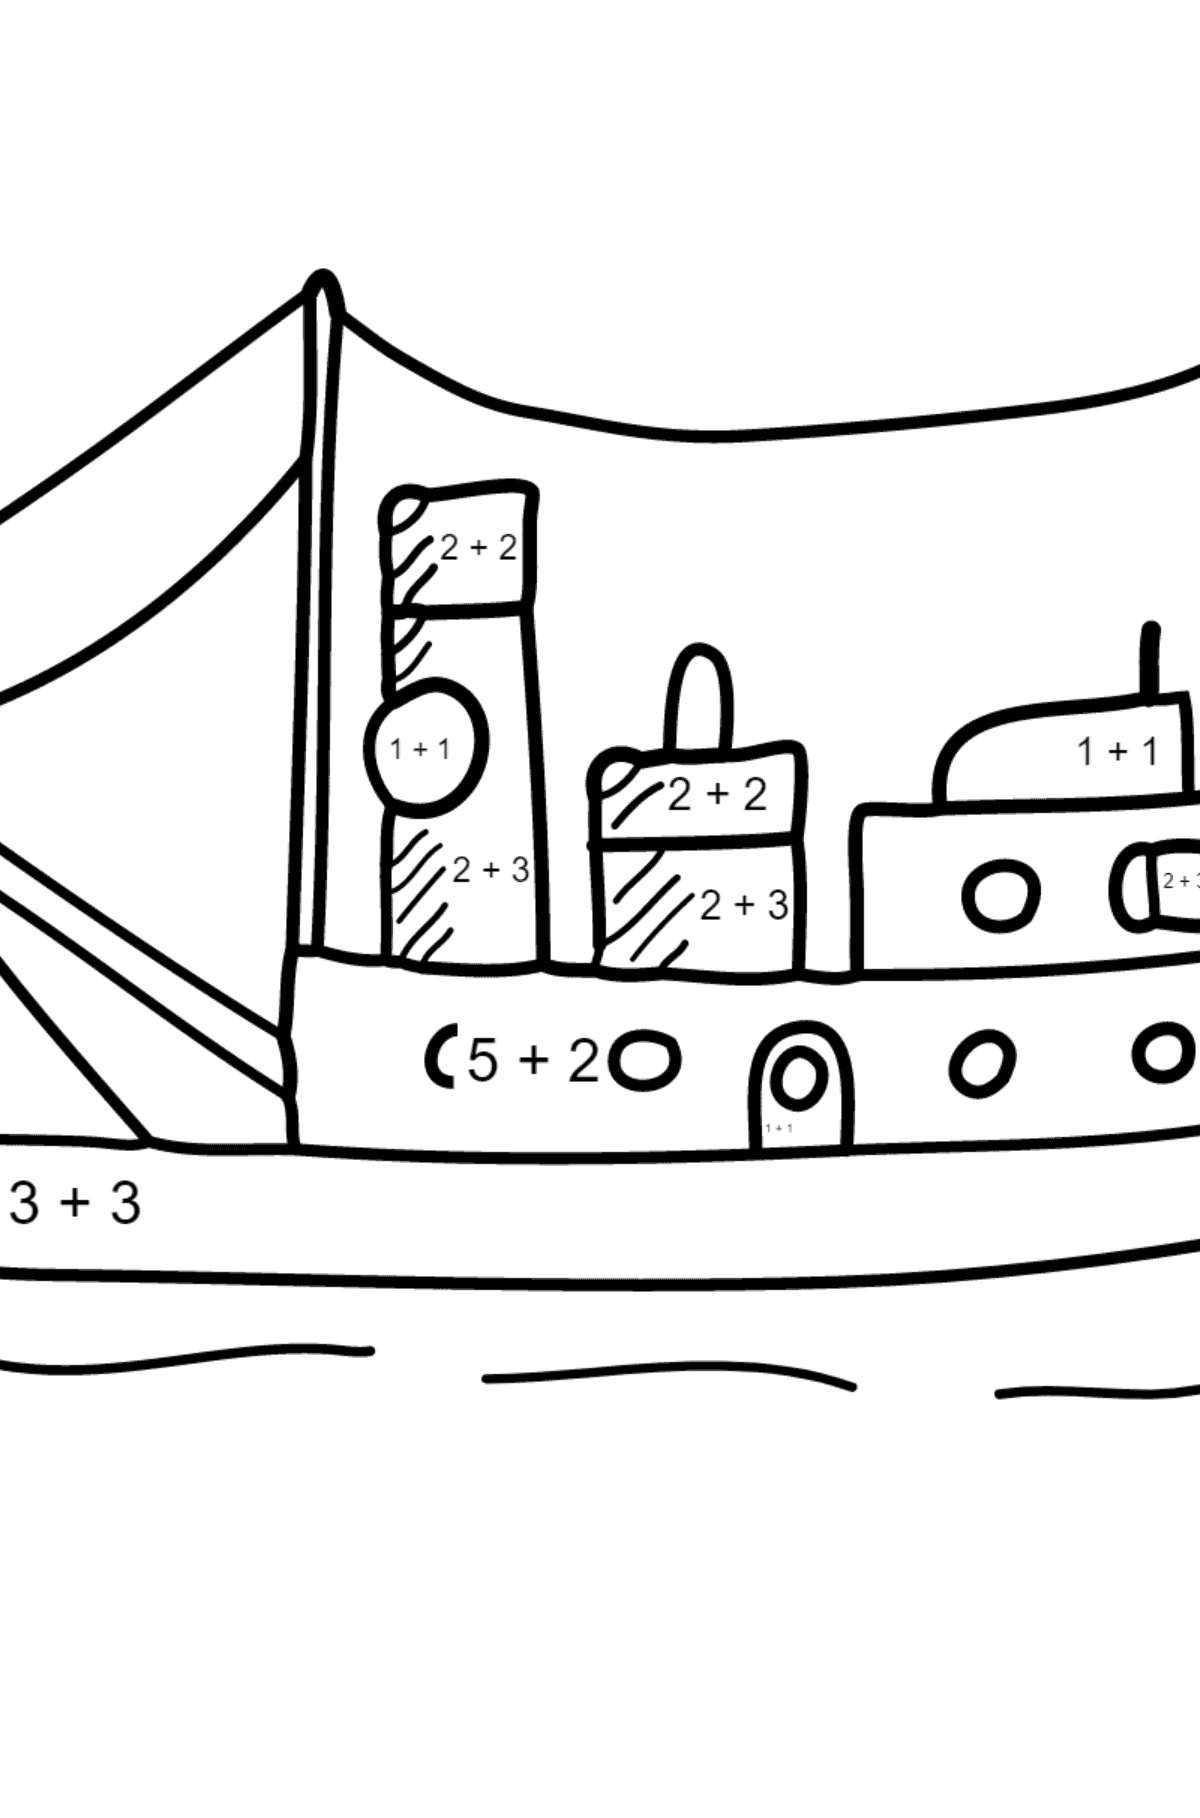 Coloring Page - A Cargo Ship - Math Coloring - Addition for Children